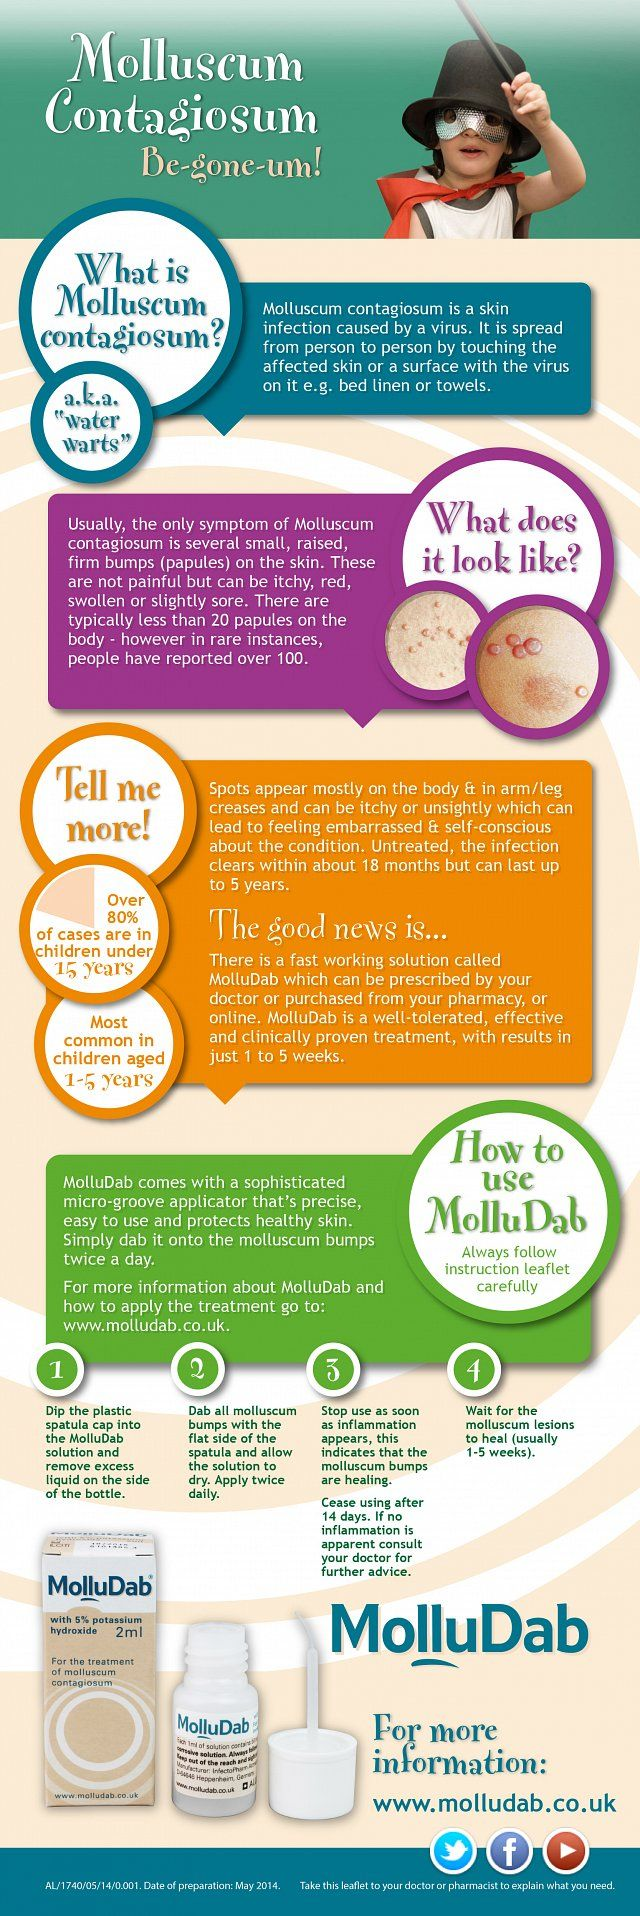 ALLIANCE PHARMACEUTICALS LTD LAUNCHES UK TREATMENT FOR MOLLUSCUM CONTAGIOSUM - Nobull News - find out more www.nobull-communications.co.uk